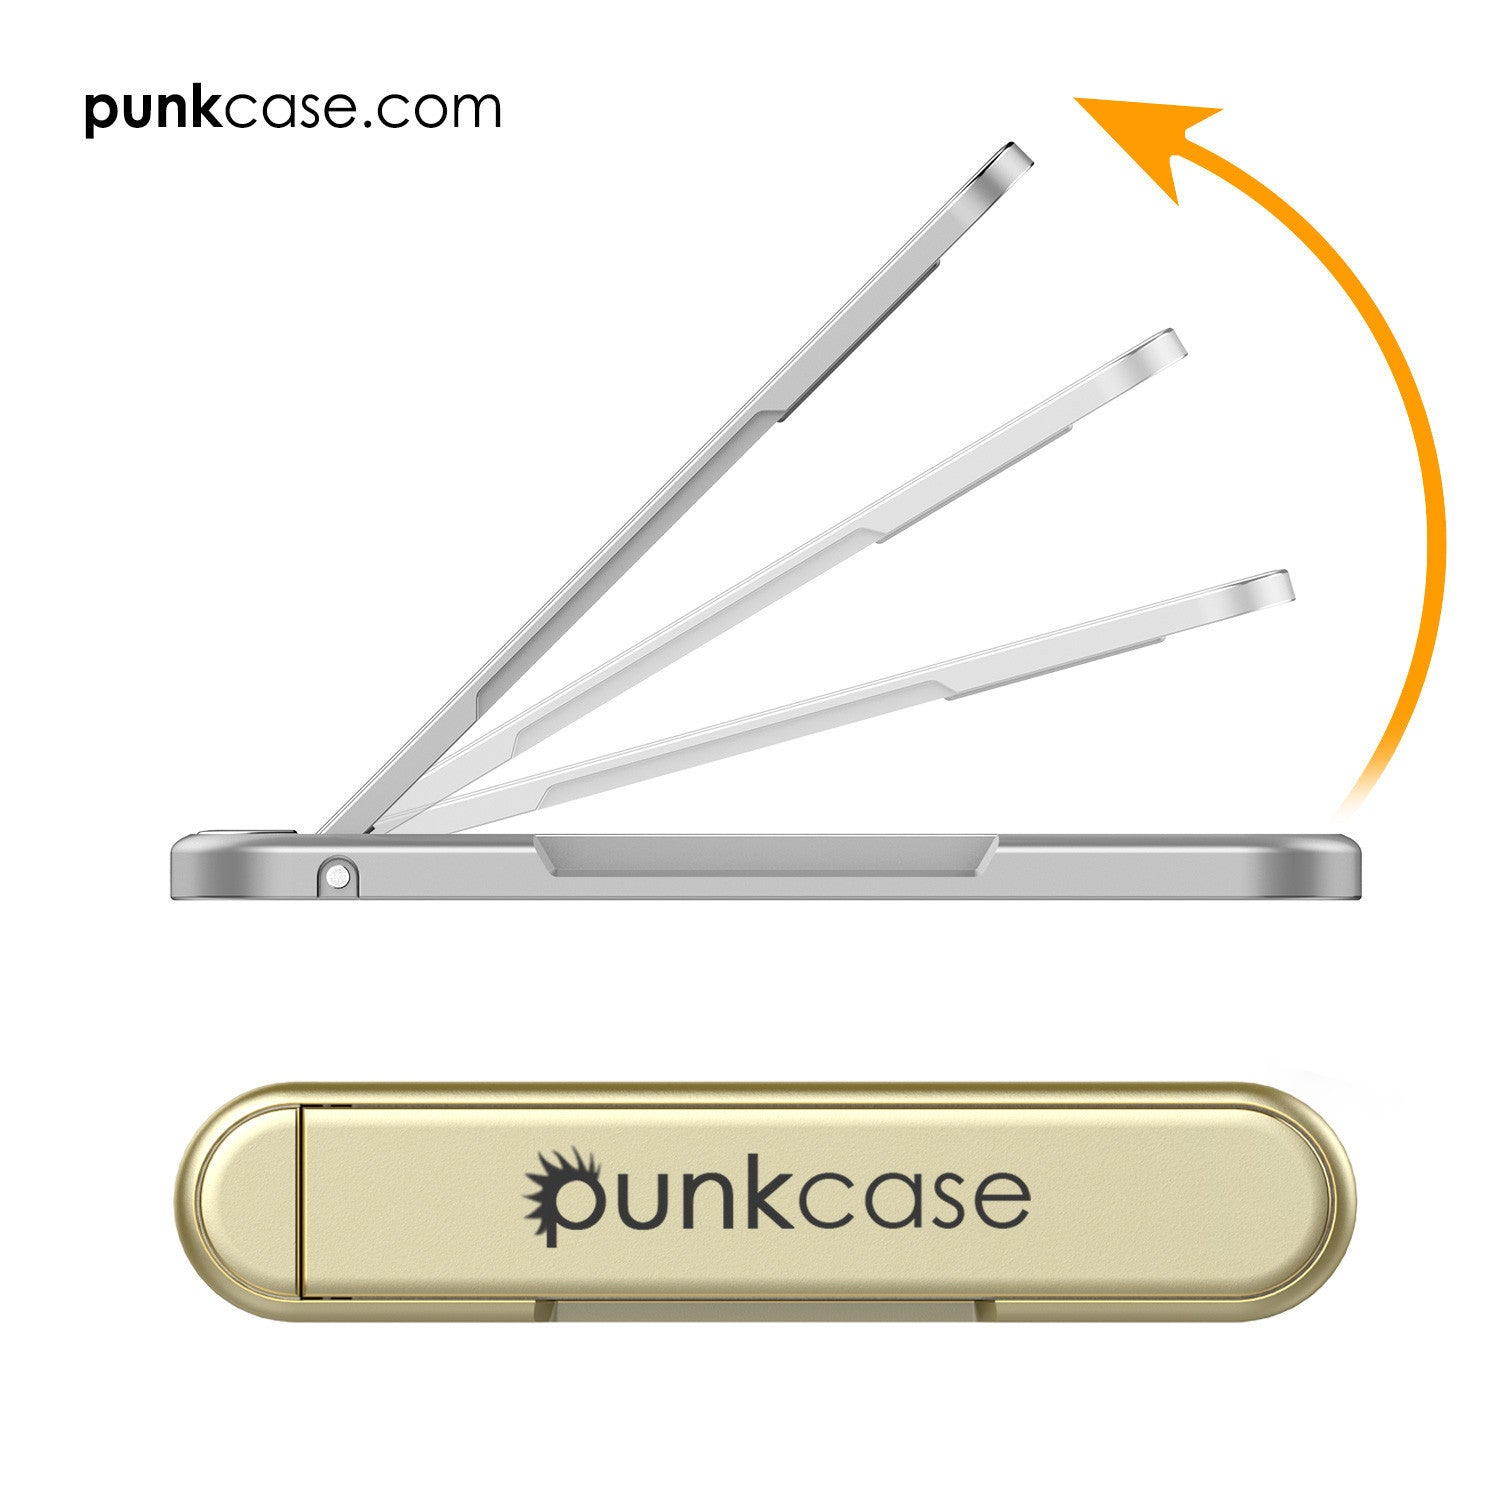 PUNKCASE FlickStick Universal Cell Phone Kickstand for all Mobile Phones & Cases with Flat Backs, One Finger Operation (Gold)